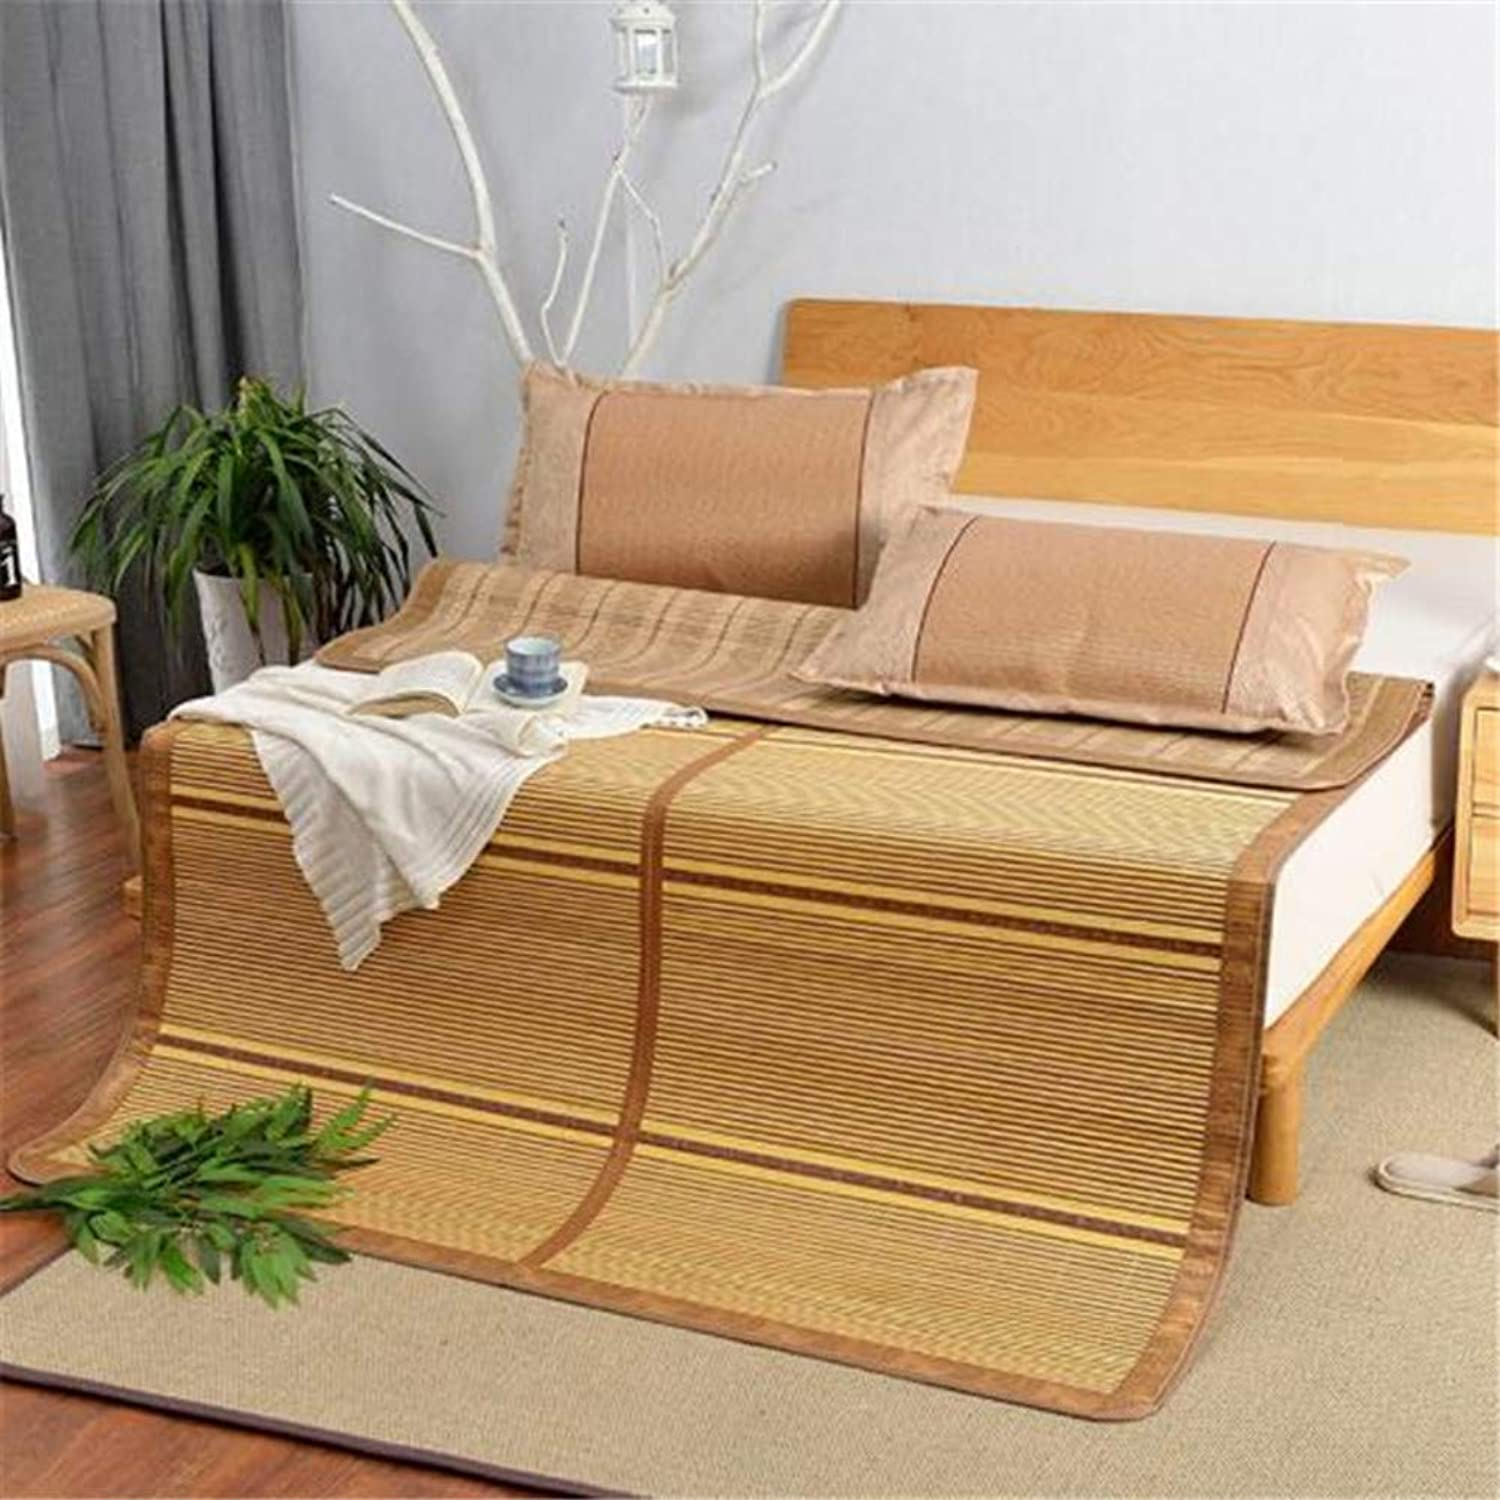 Comfortable Summer Sleeping Mat, Collapsible Double-Sided Bamboo Mat Smooth Cooling Air Conditioning Mat Student Dormitory Mat-a 90x200cm(35x79inch)